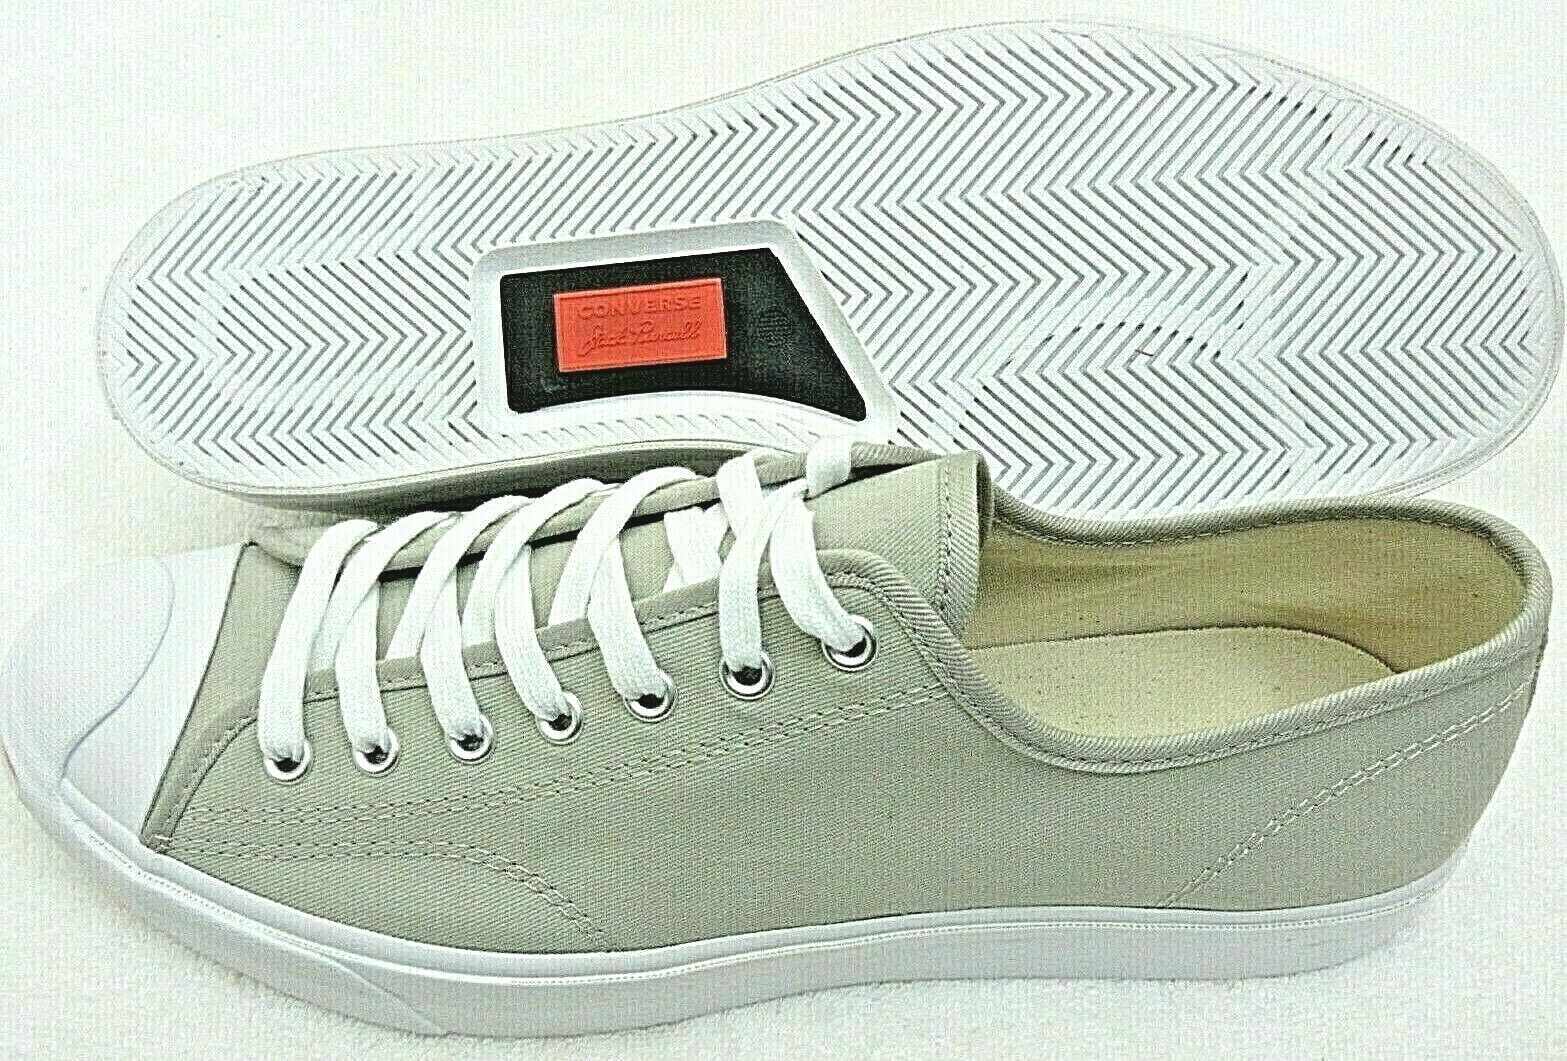 Converse Mens Jack Purcell OX Canvas Birch Bark White Habanero Red Shoes Sz 9.5